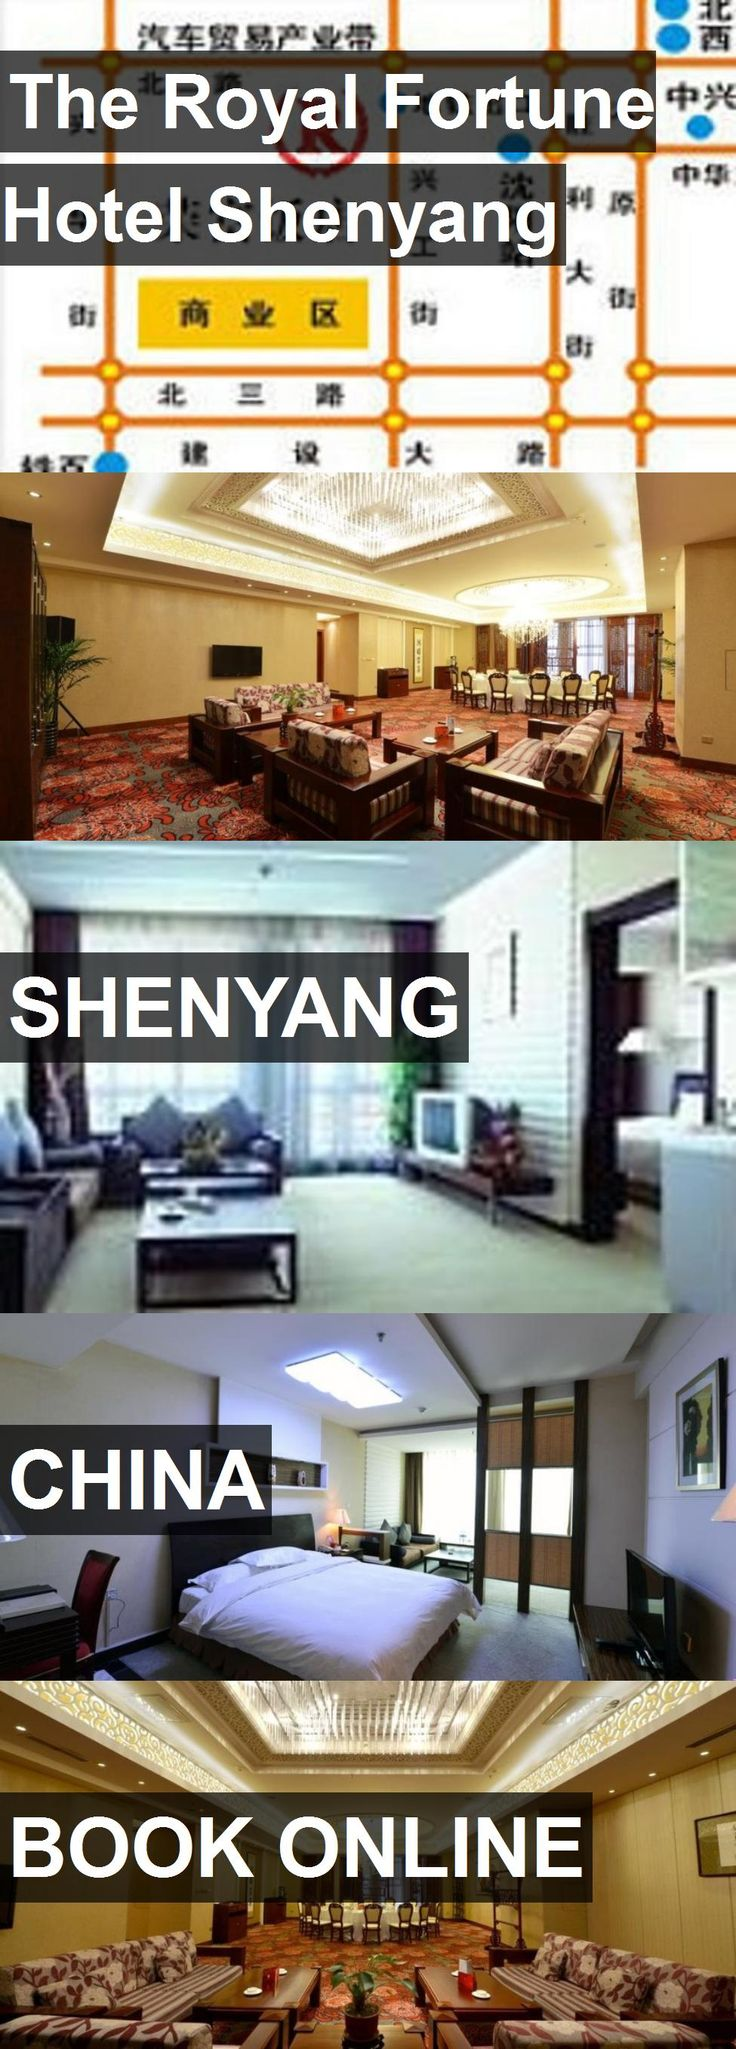 The Royal Fortune Hotel Shenyang in Shenyang, China. For more information, photos, reviews and best prices please follow the link. #China #Shenyang #travel #vacation #hotel